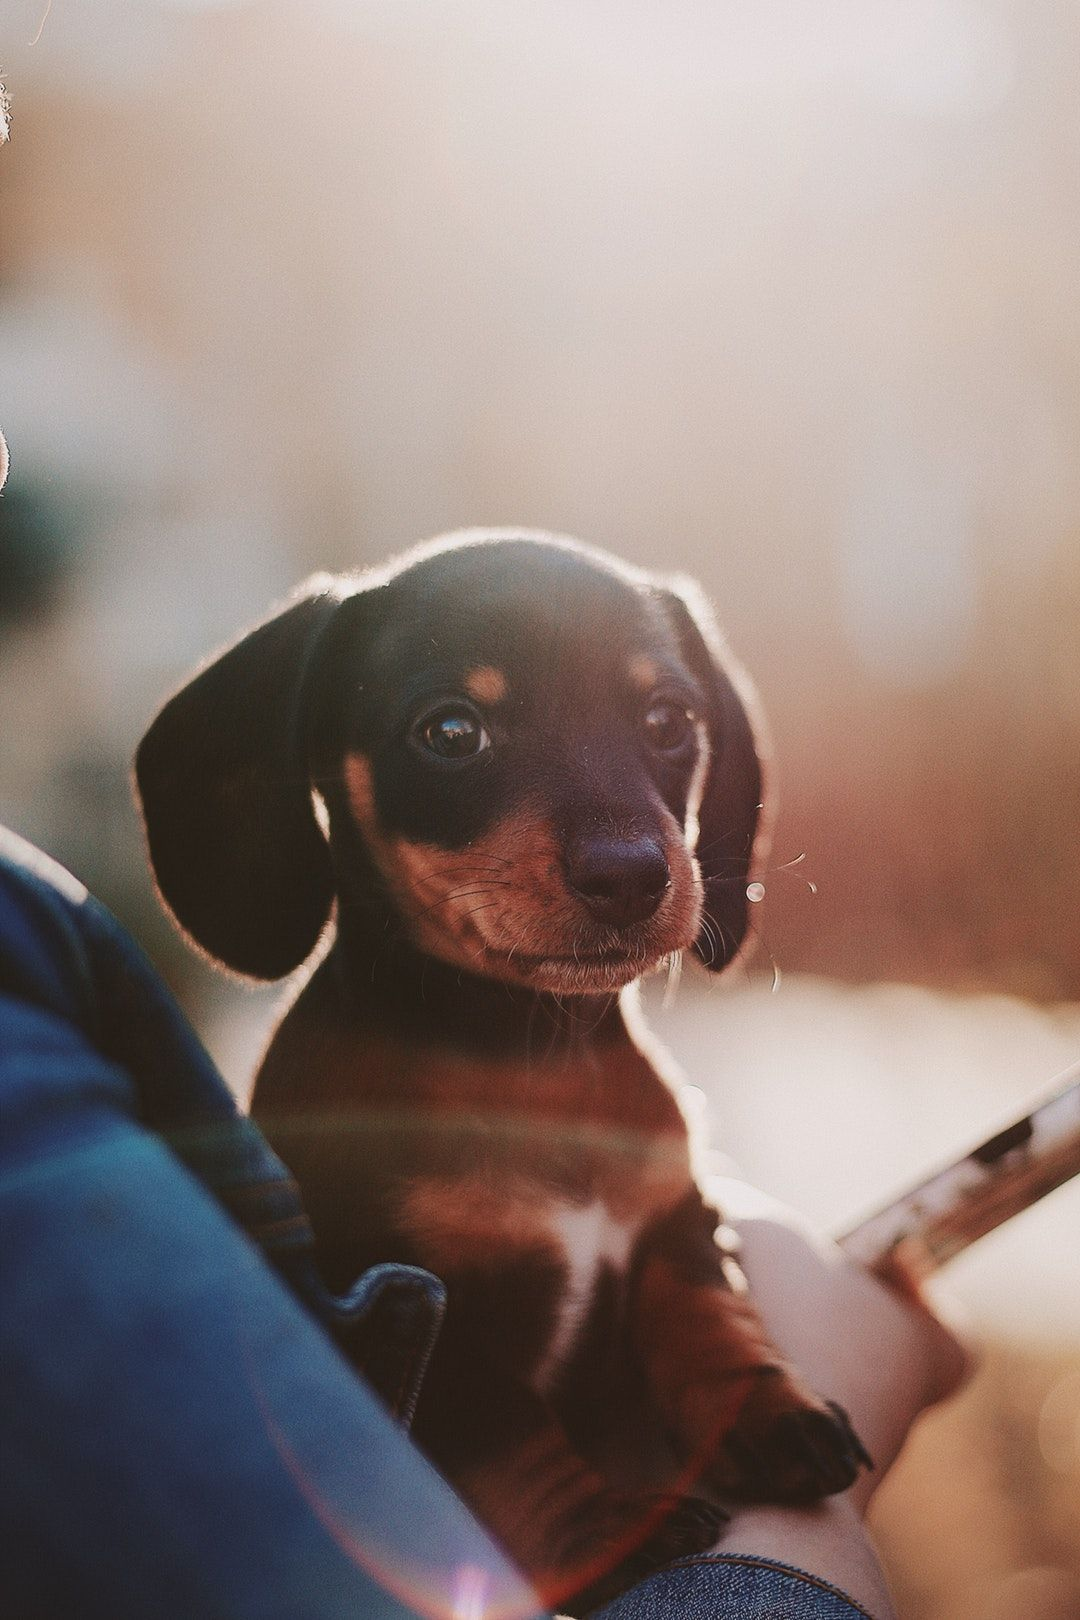 Download This Free Hd Photo Of Dog Puppy Pet And Portrait In